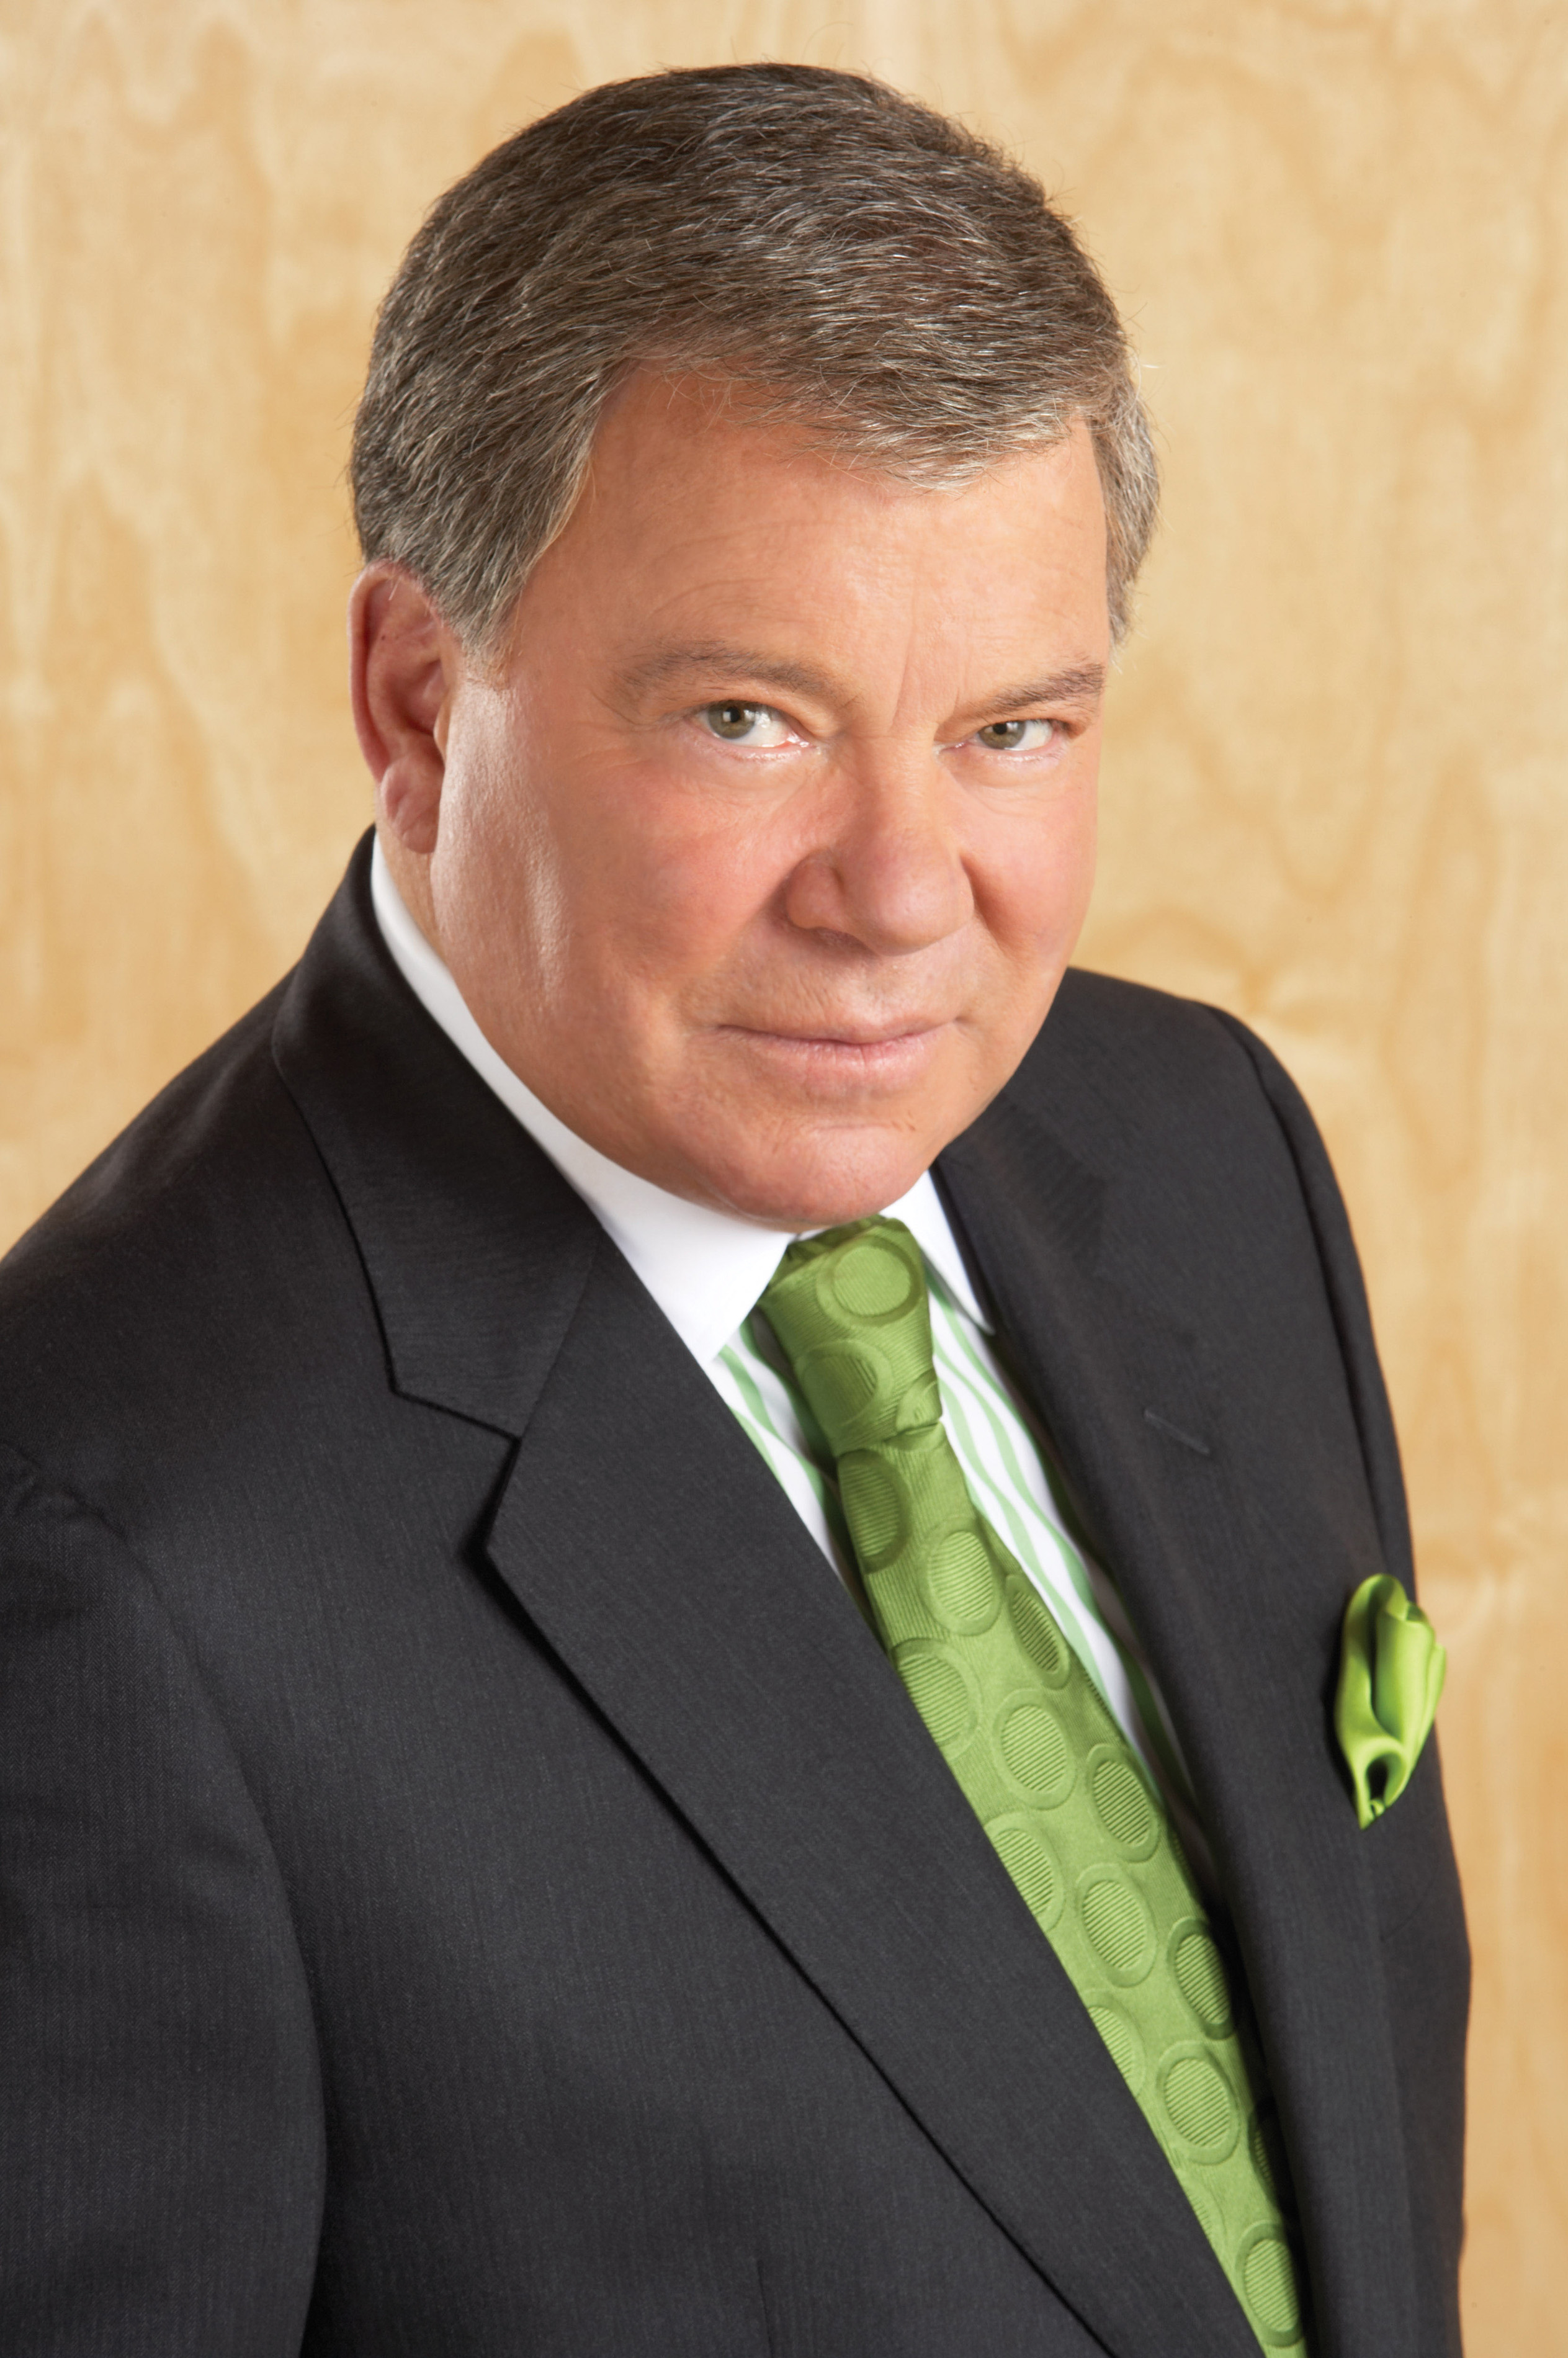 William Shatner photo, pics, wallpaper - photo #